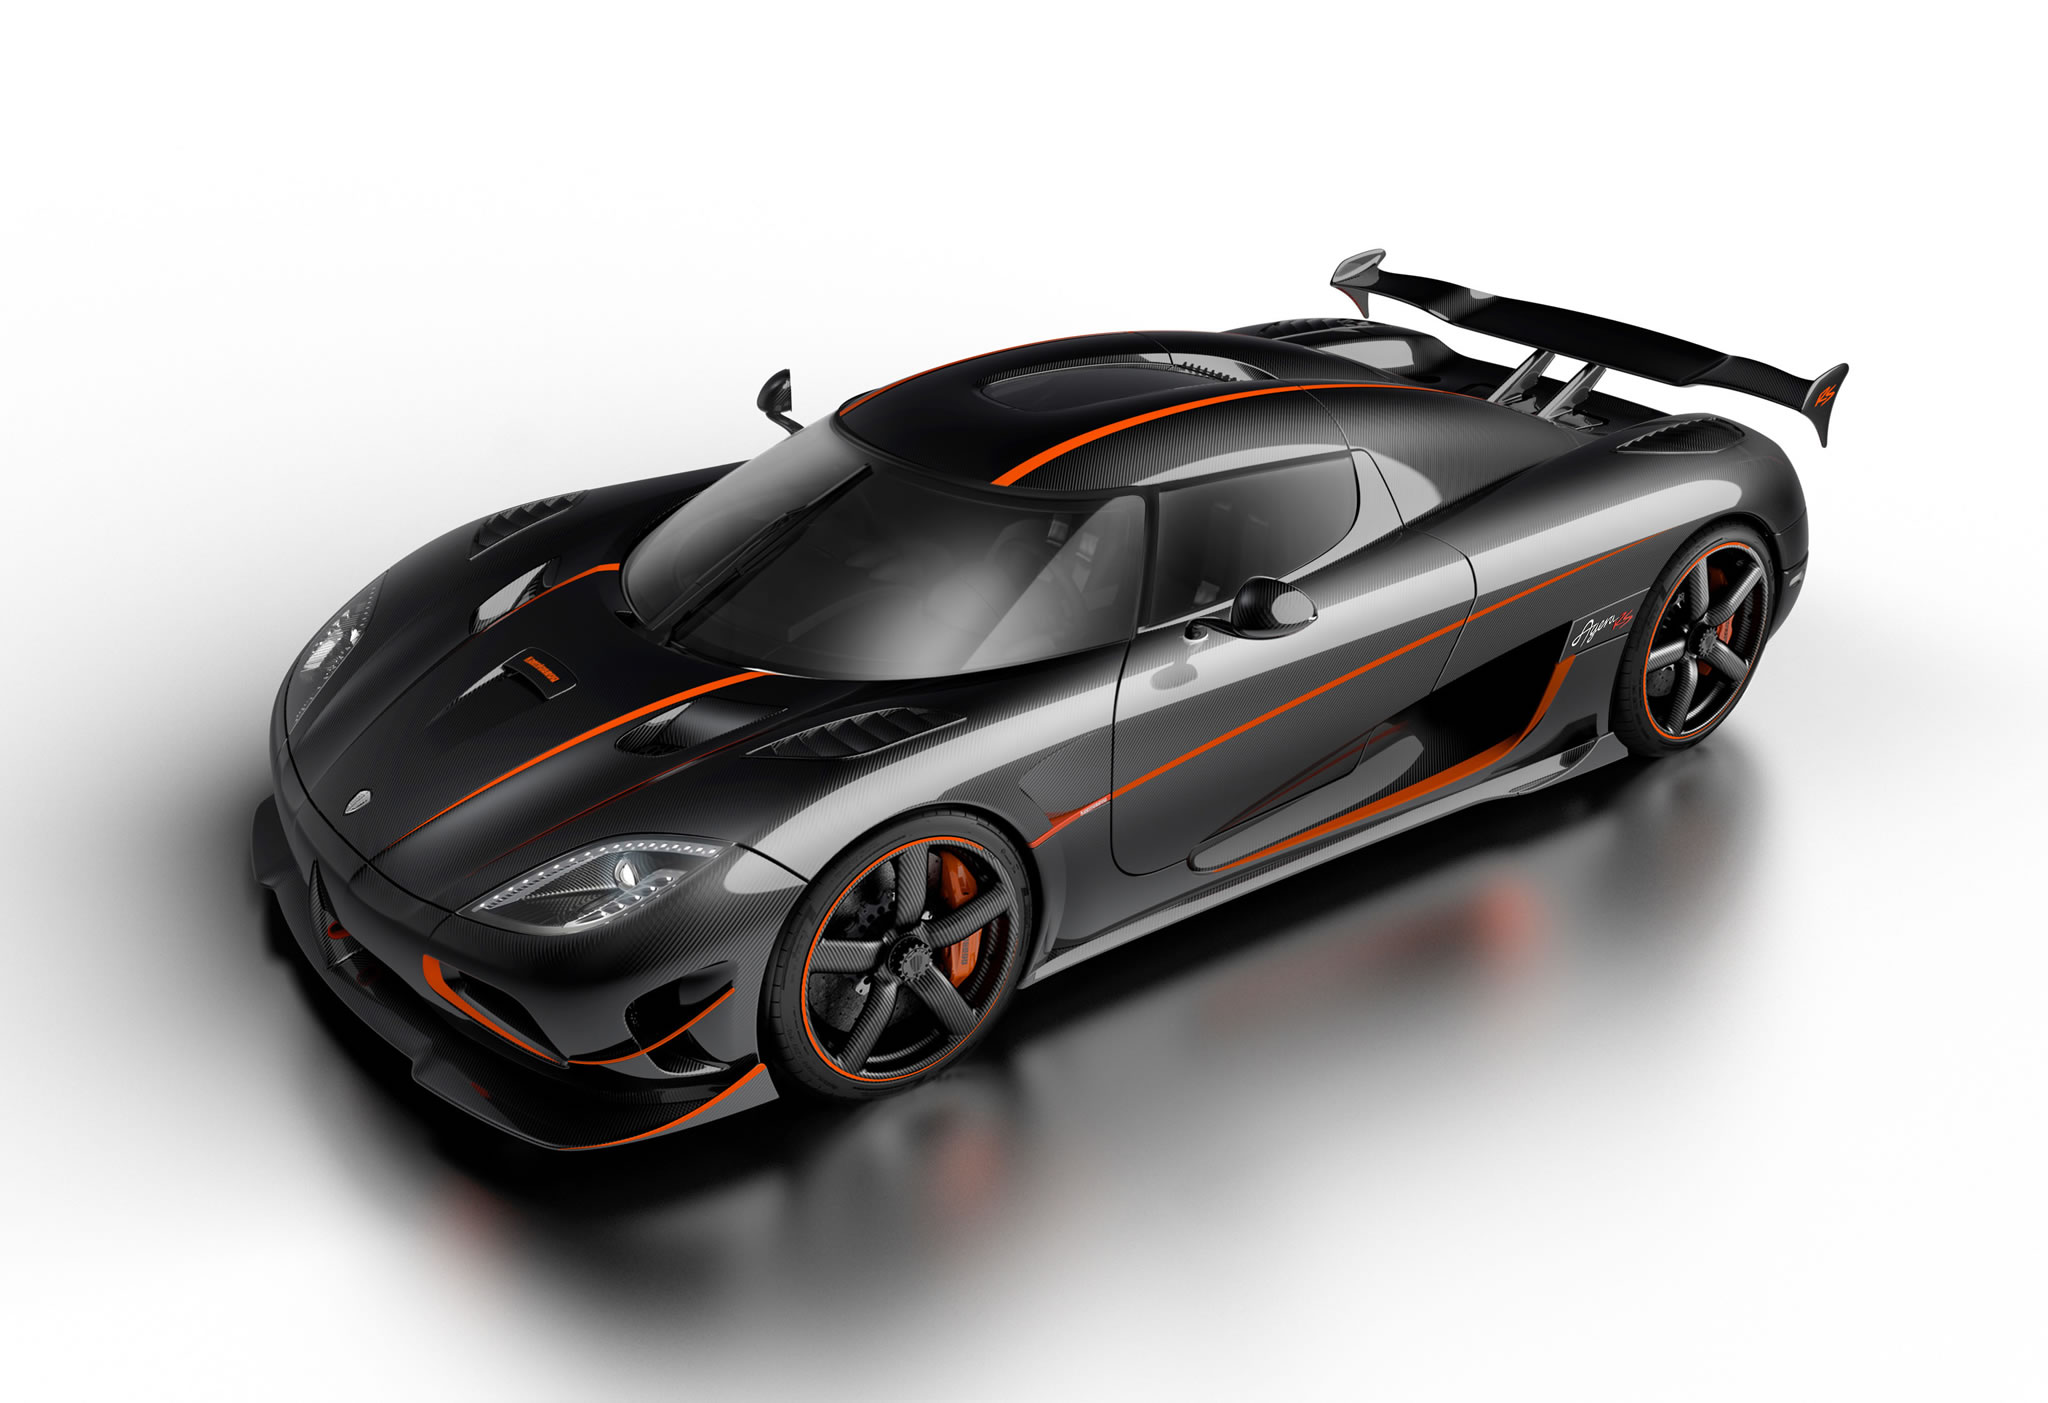 2014 Mazda 6 For Sale >> 2015 Koenigsegg Agera RS - front photo, 1,160 hp, size 2048 x 1403, nr. 1/6 - RSsportscars.com